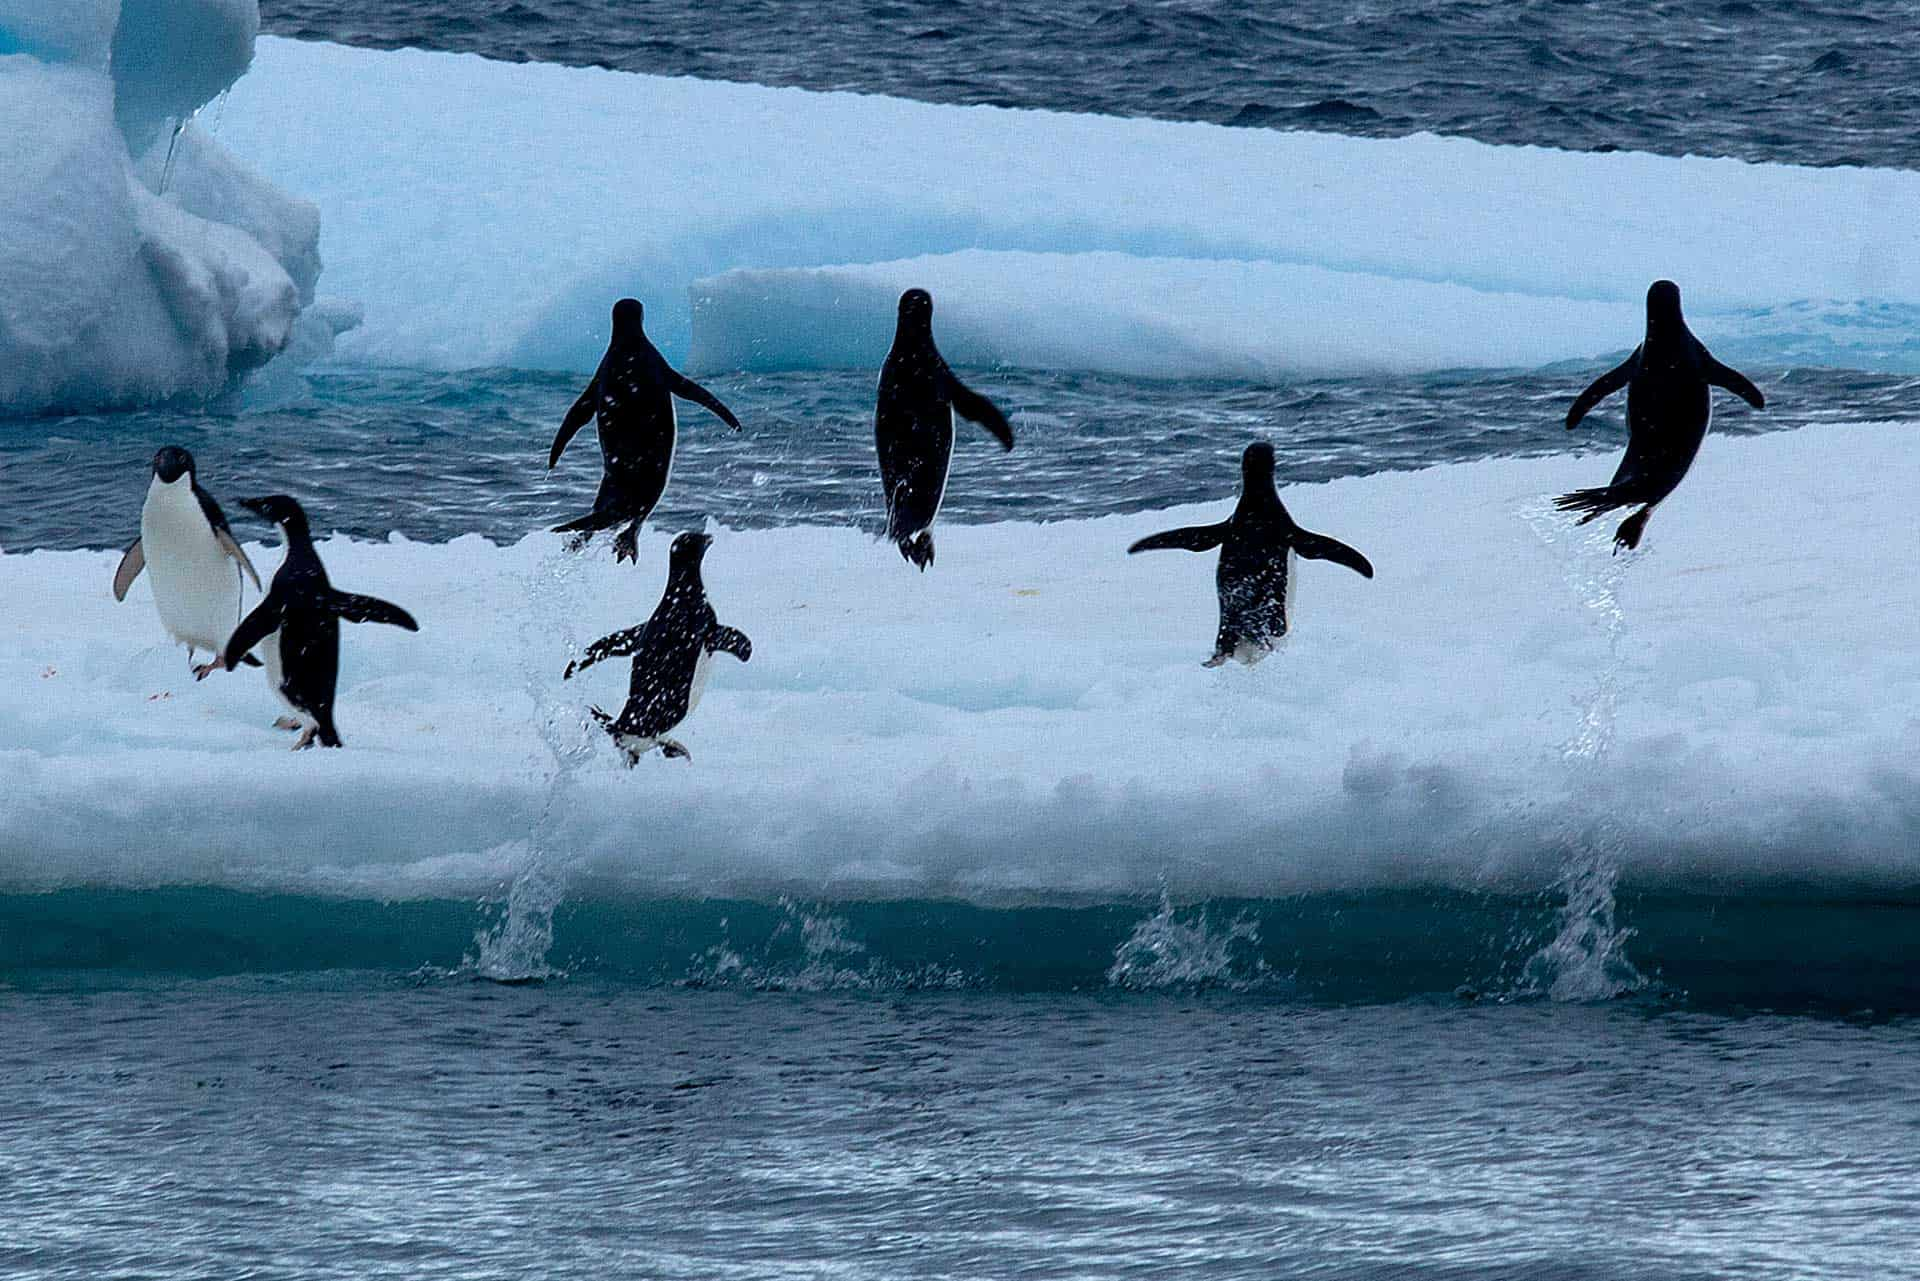 Adelie Penguins head to shore after fishing Weddell Sea